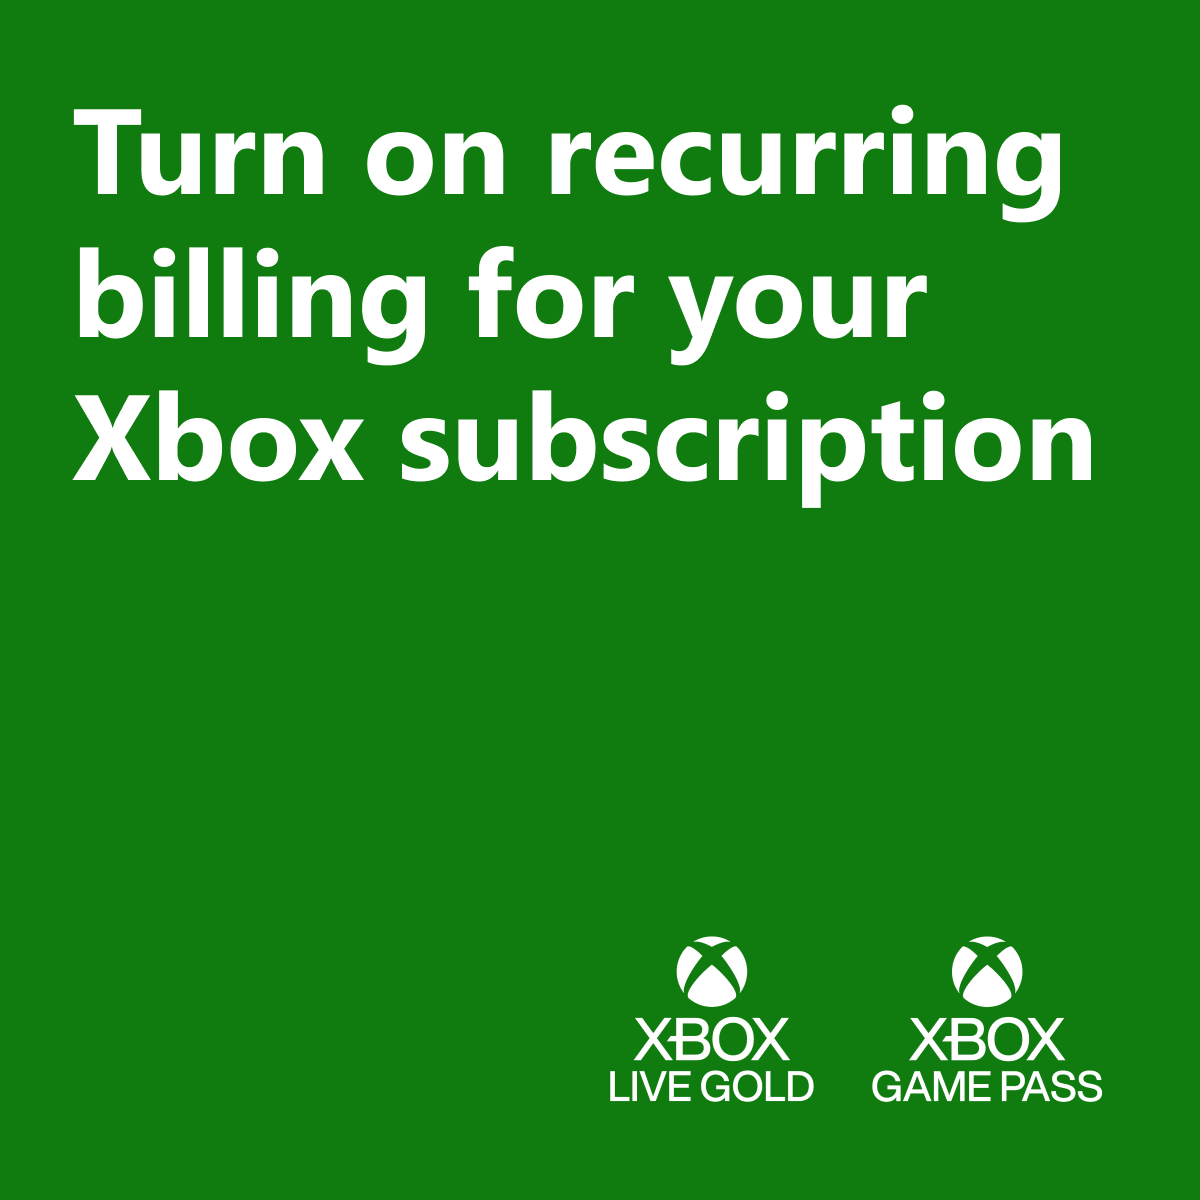 Last resolution: No more forgetting (or remembering!) payments 💳  Set up @XboxGamePass and all your other subs to renew automatically.